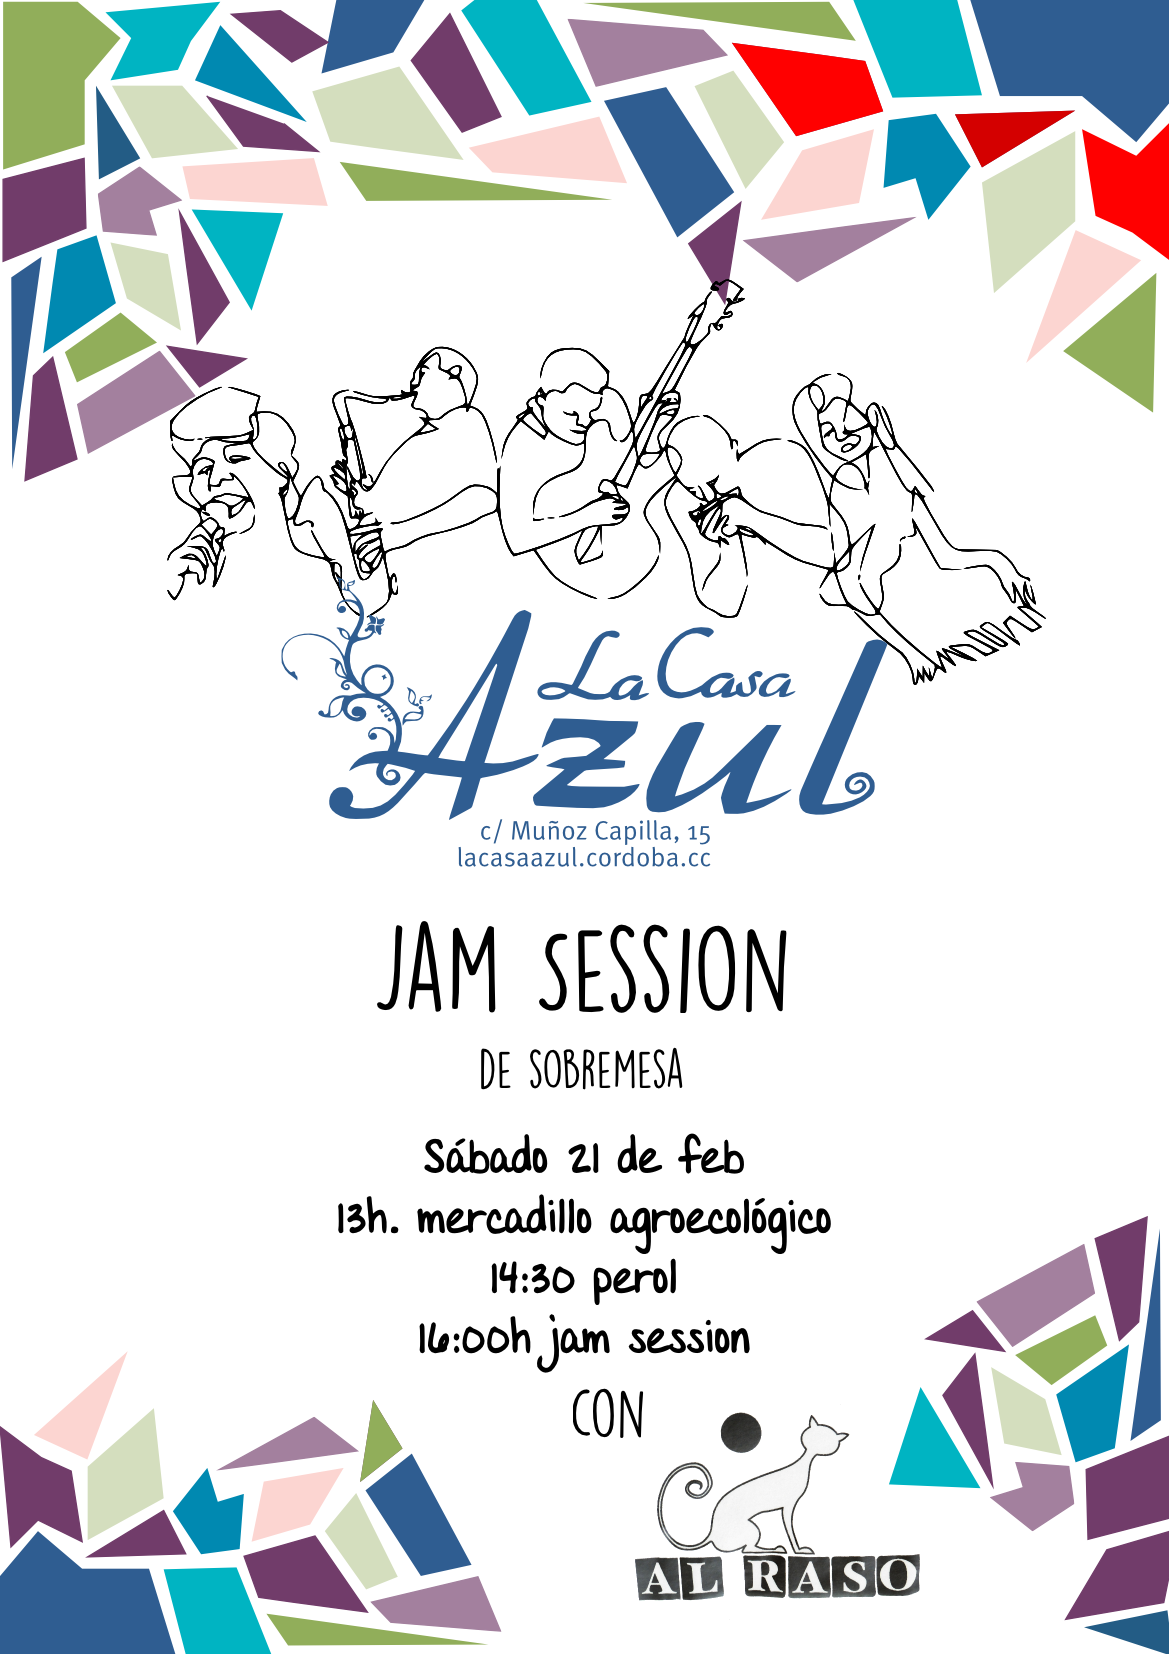 Cartel Jam Session en la casa azul